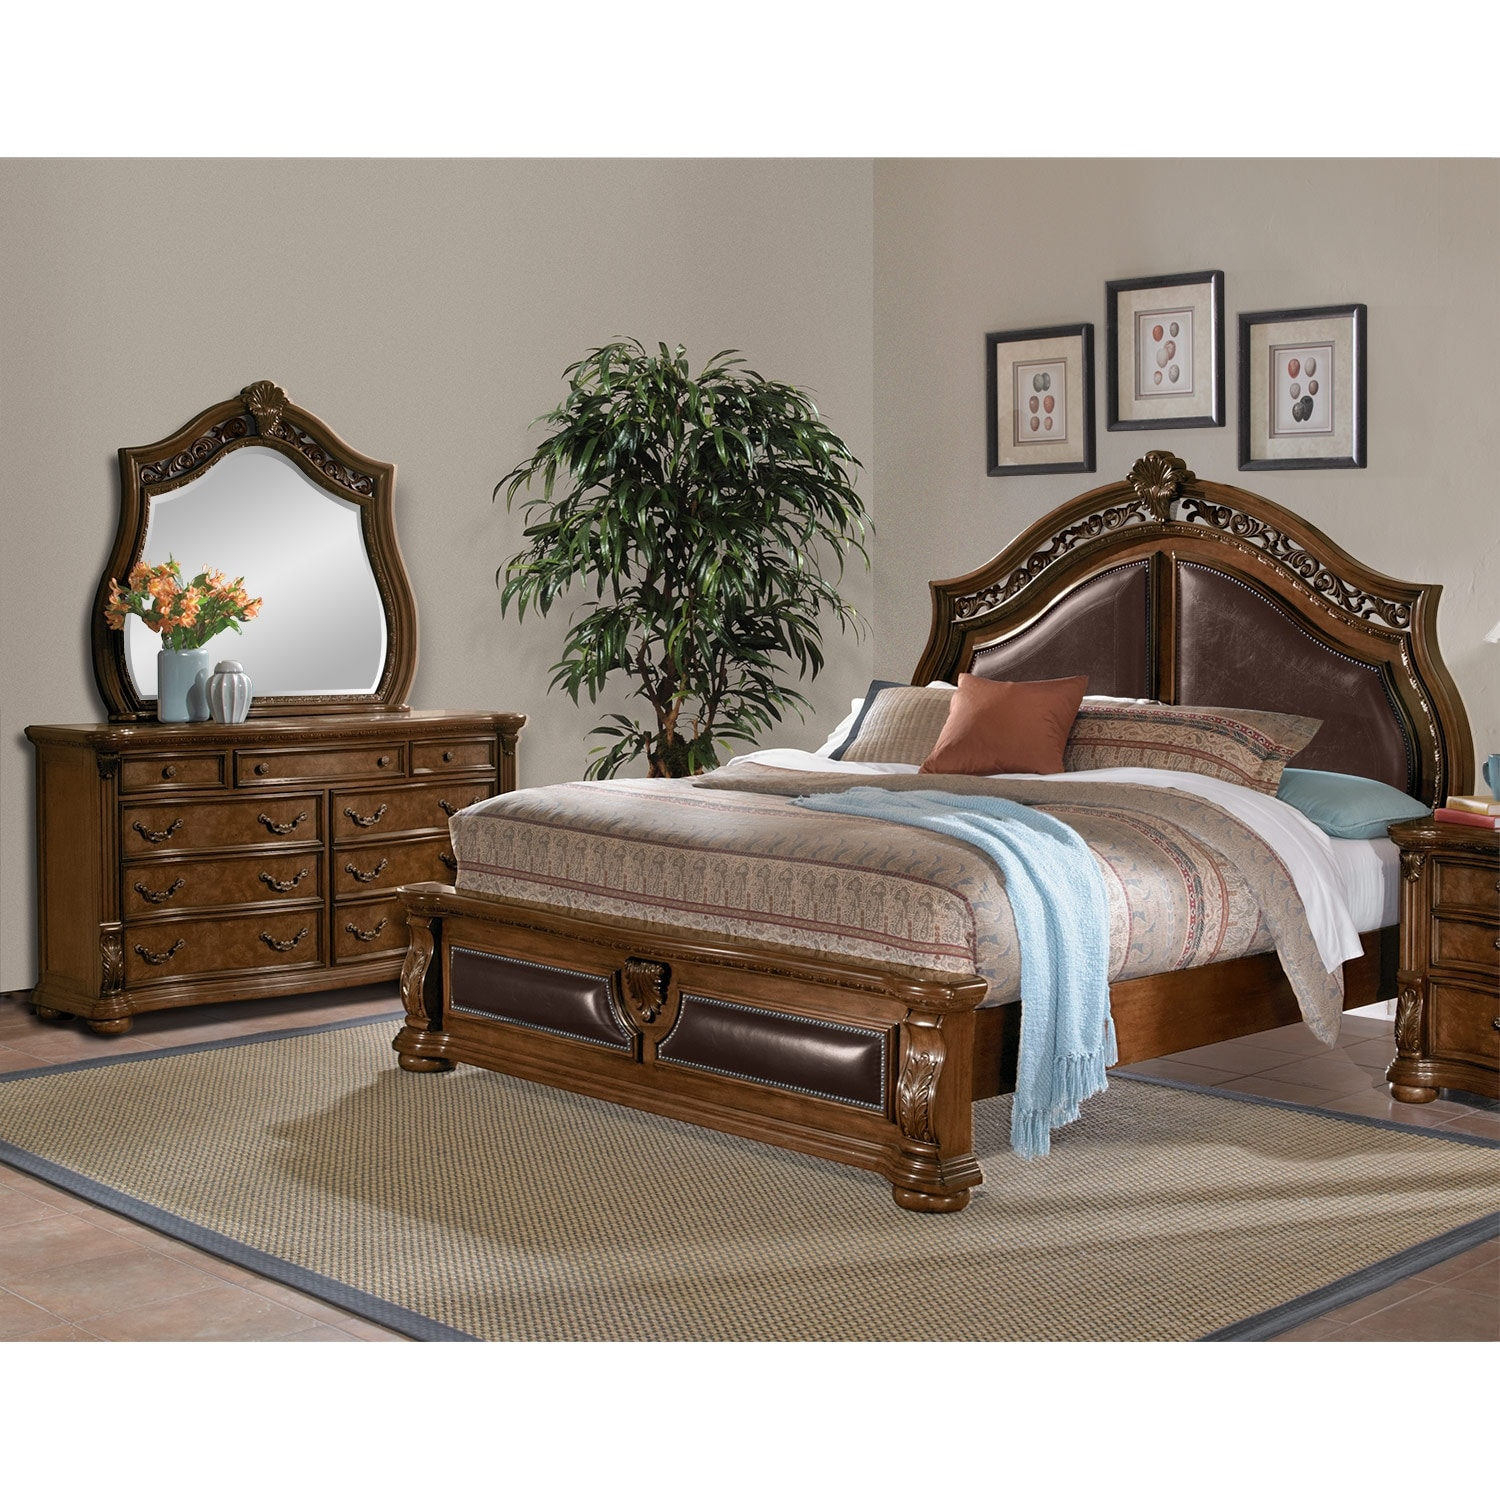 Morocco 5-Piece Queen Bedroom Set - Pecan